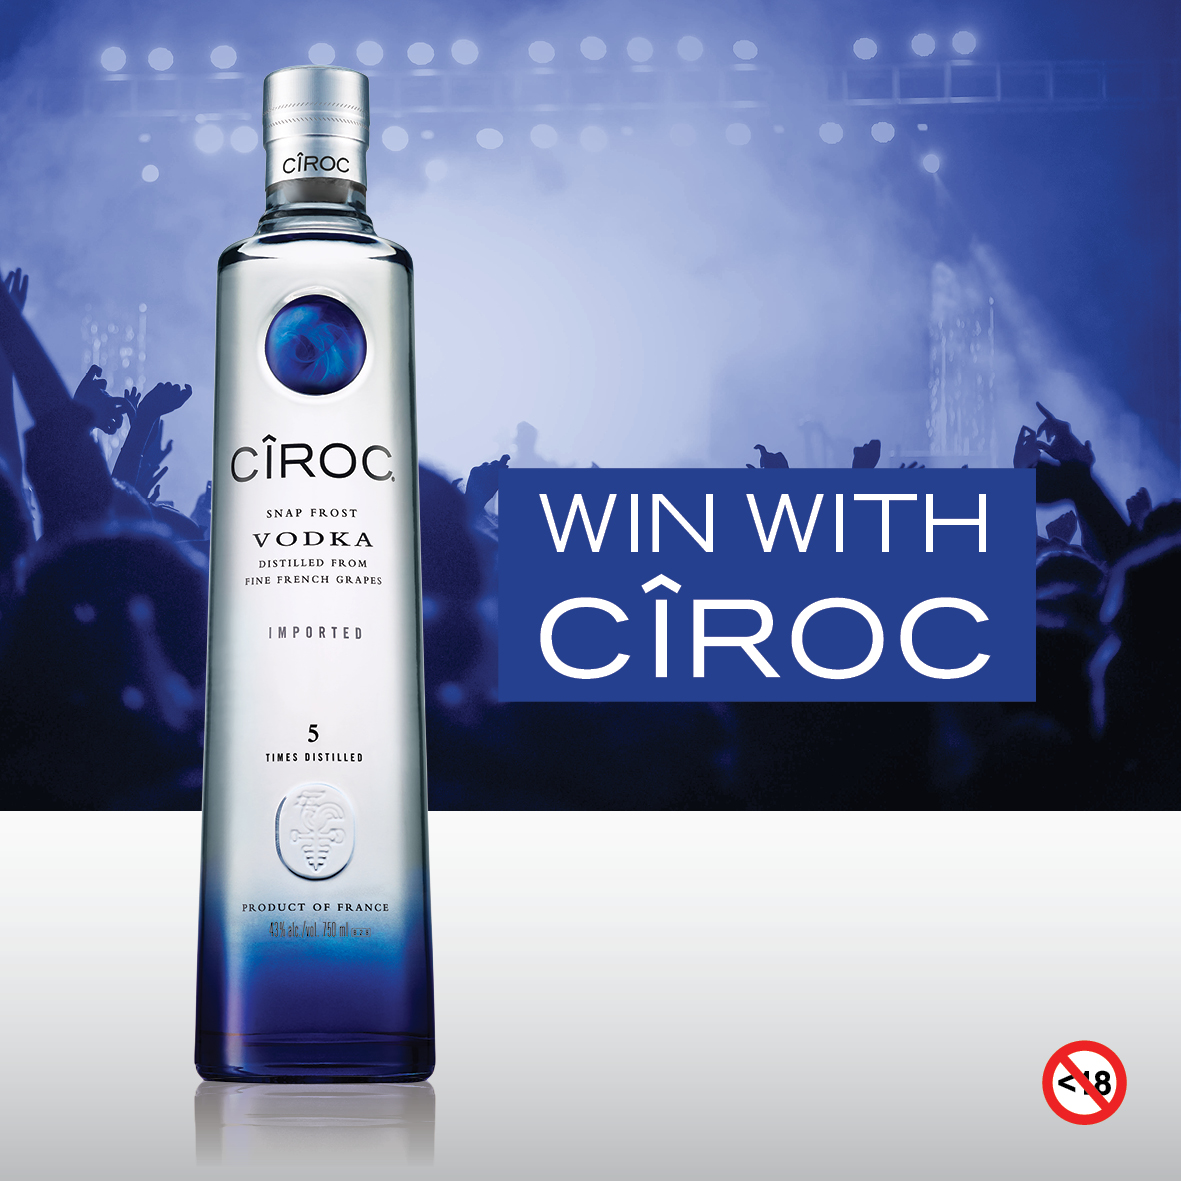 WIN One Of x 5 Double Tickets To Pop Bottles With CÎROC DSA0014 CIROC Social Post2